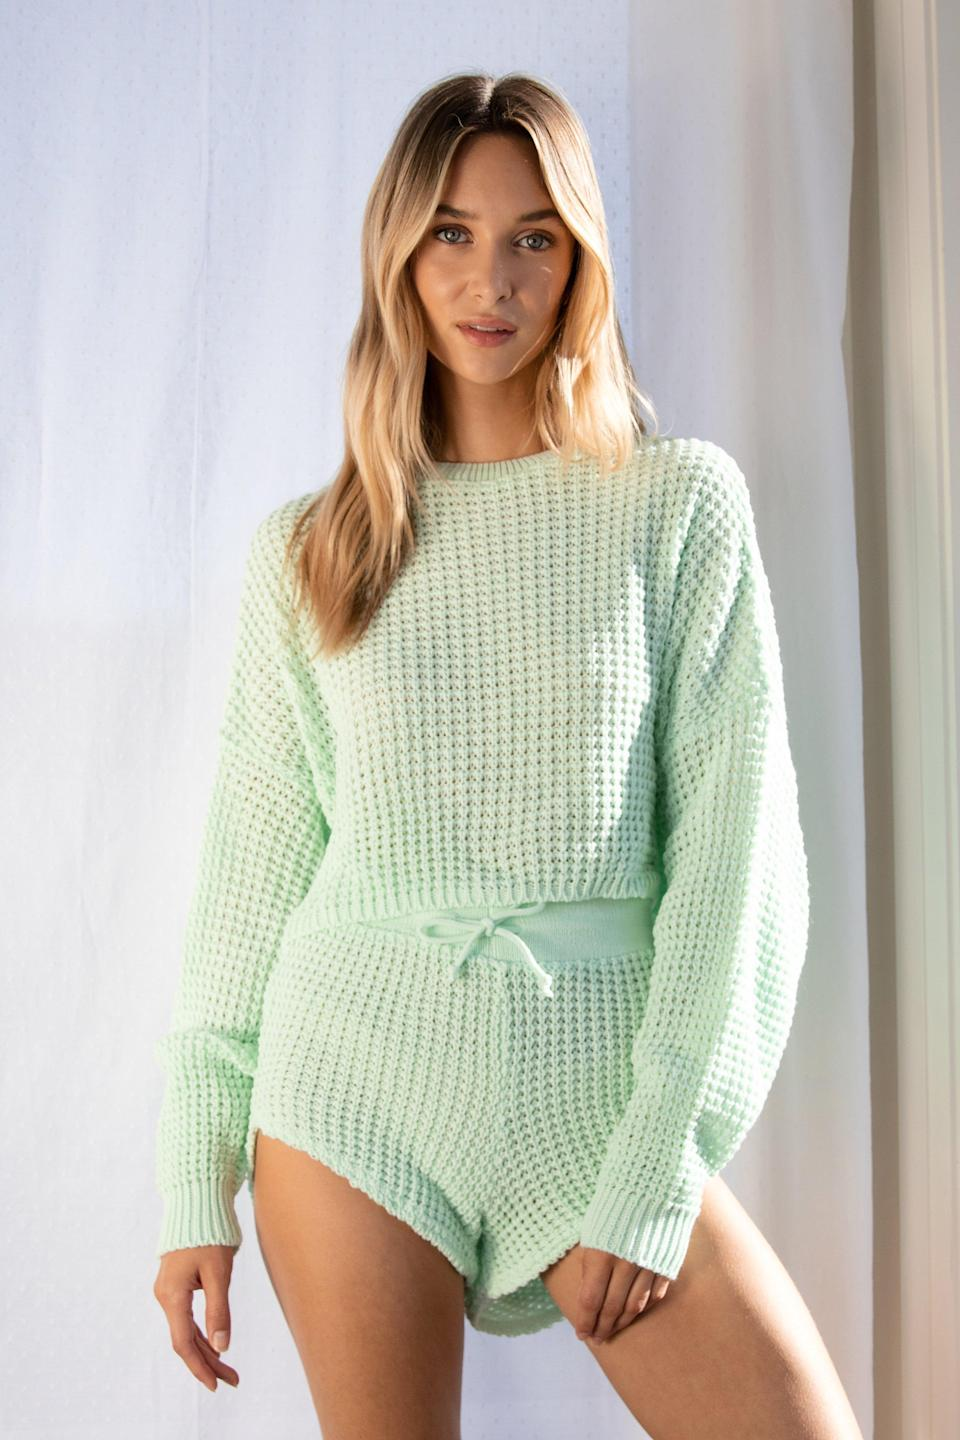 "<h3><a href=""https://upwest.com/products/womens-french-terry-jogger?"" rel=""nofollow noopener"" target=""_blank"" data-ylk=""slk:Knit Pause Sweater and Shorts Lounge Set"" class=""link rapid-noclick-resp"">Knit Pause Sweater and Shorts Lounge Set</a></h3><br><br><strong>NastyGal</strong> Knit Pause Sweater and Shorts Lounge Set, $, available at <a href=""https://go.skimresources.com/?id=30283X879131&url=https%3A%2F%2Fwww.nastygal.com%2Fknit-pause-sweater-and-shorts-lounge-set%2FAGG47450-356-56.html%3F"" rel=""nofollow noopener"" target=""_blank"" data-ylk=""slk:NastyGal"" class=""link rapid-noclick-resp"">NastyGal</a>"